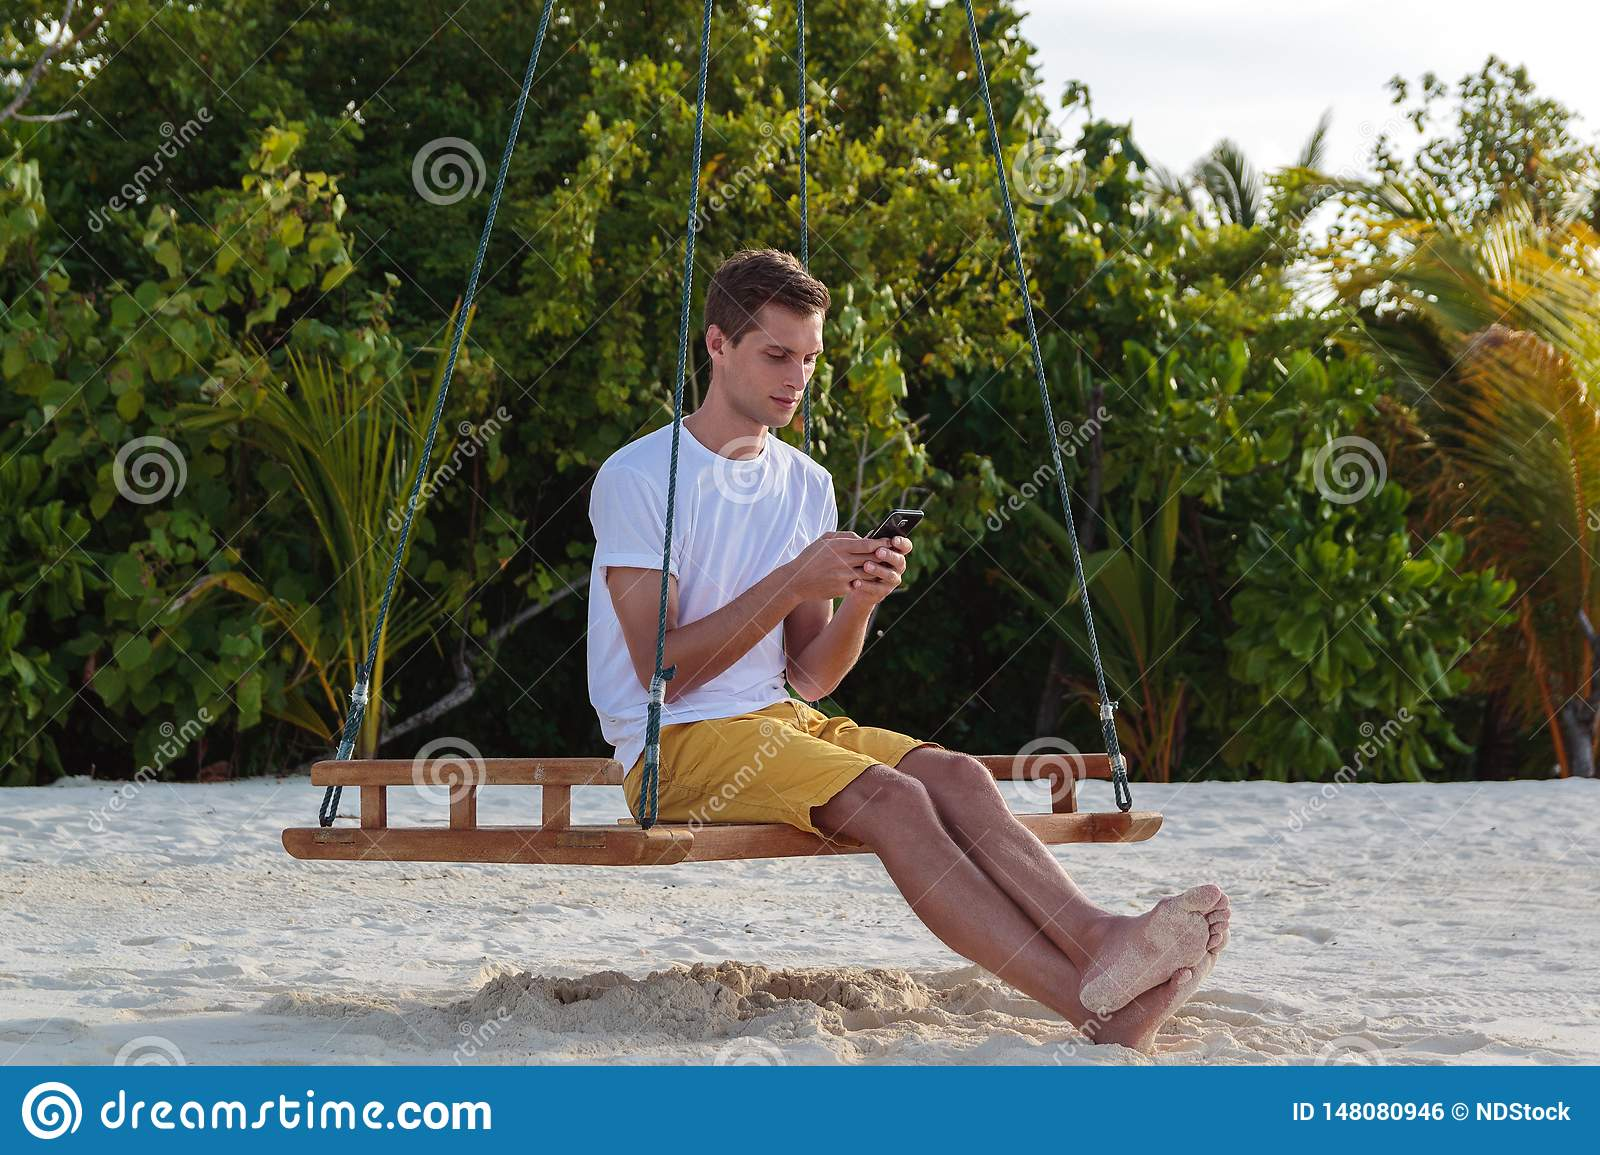 Young man seated on a swing and using his phone. White sand and jungle as background